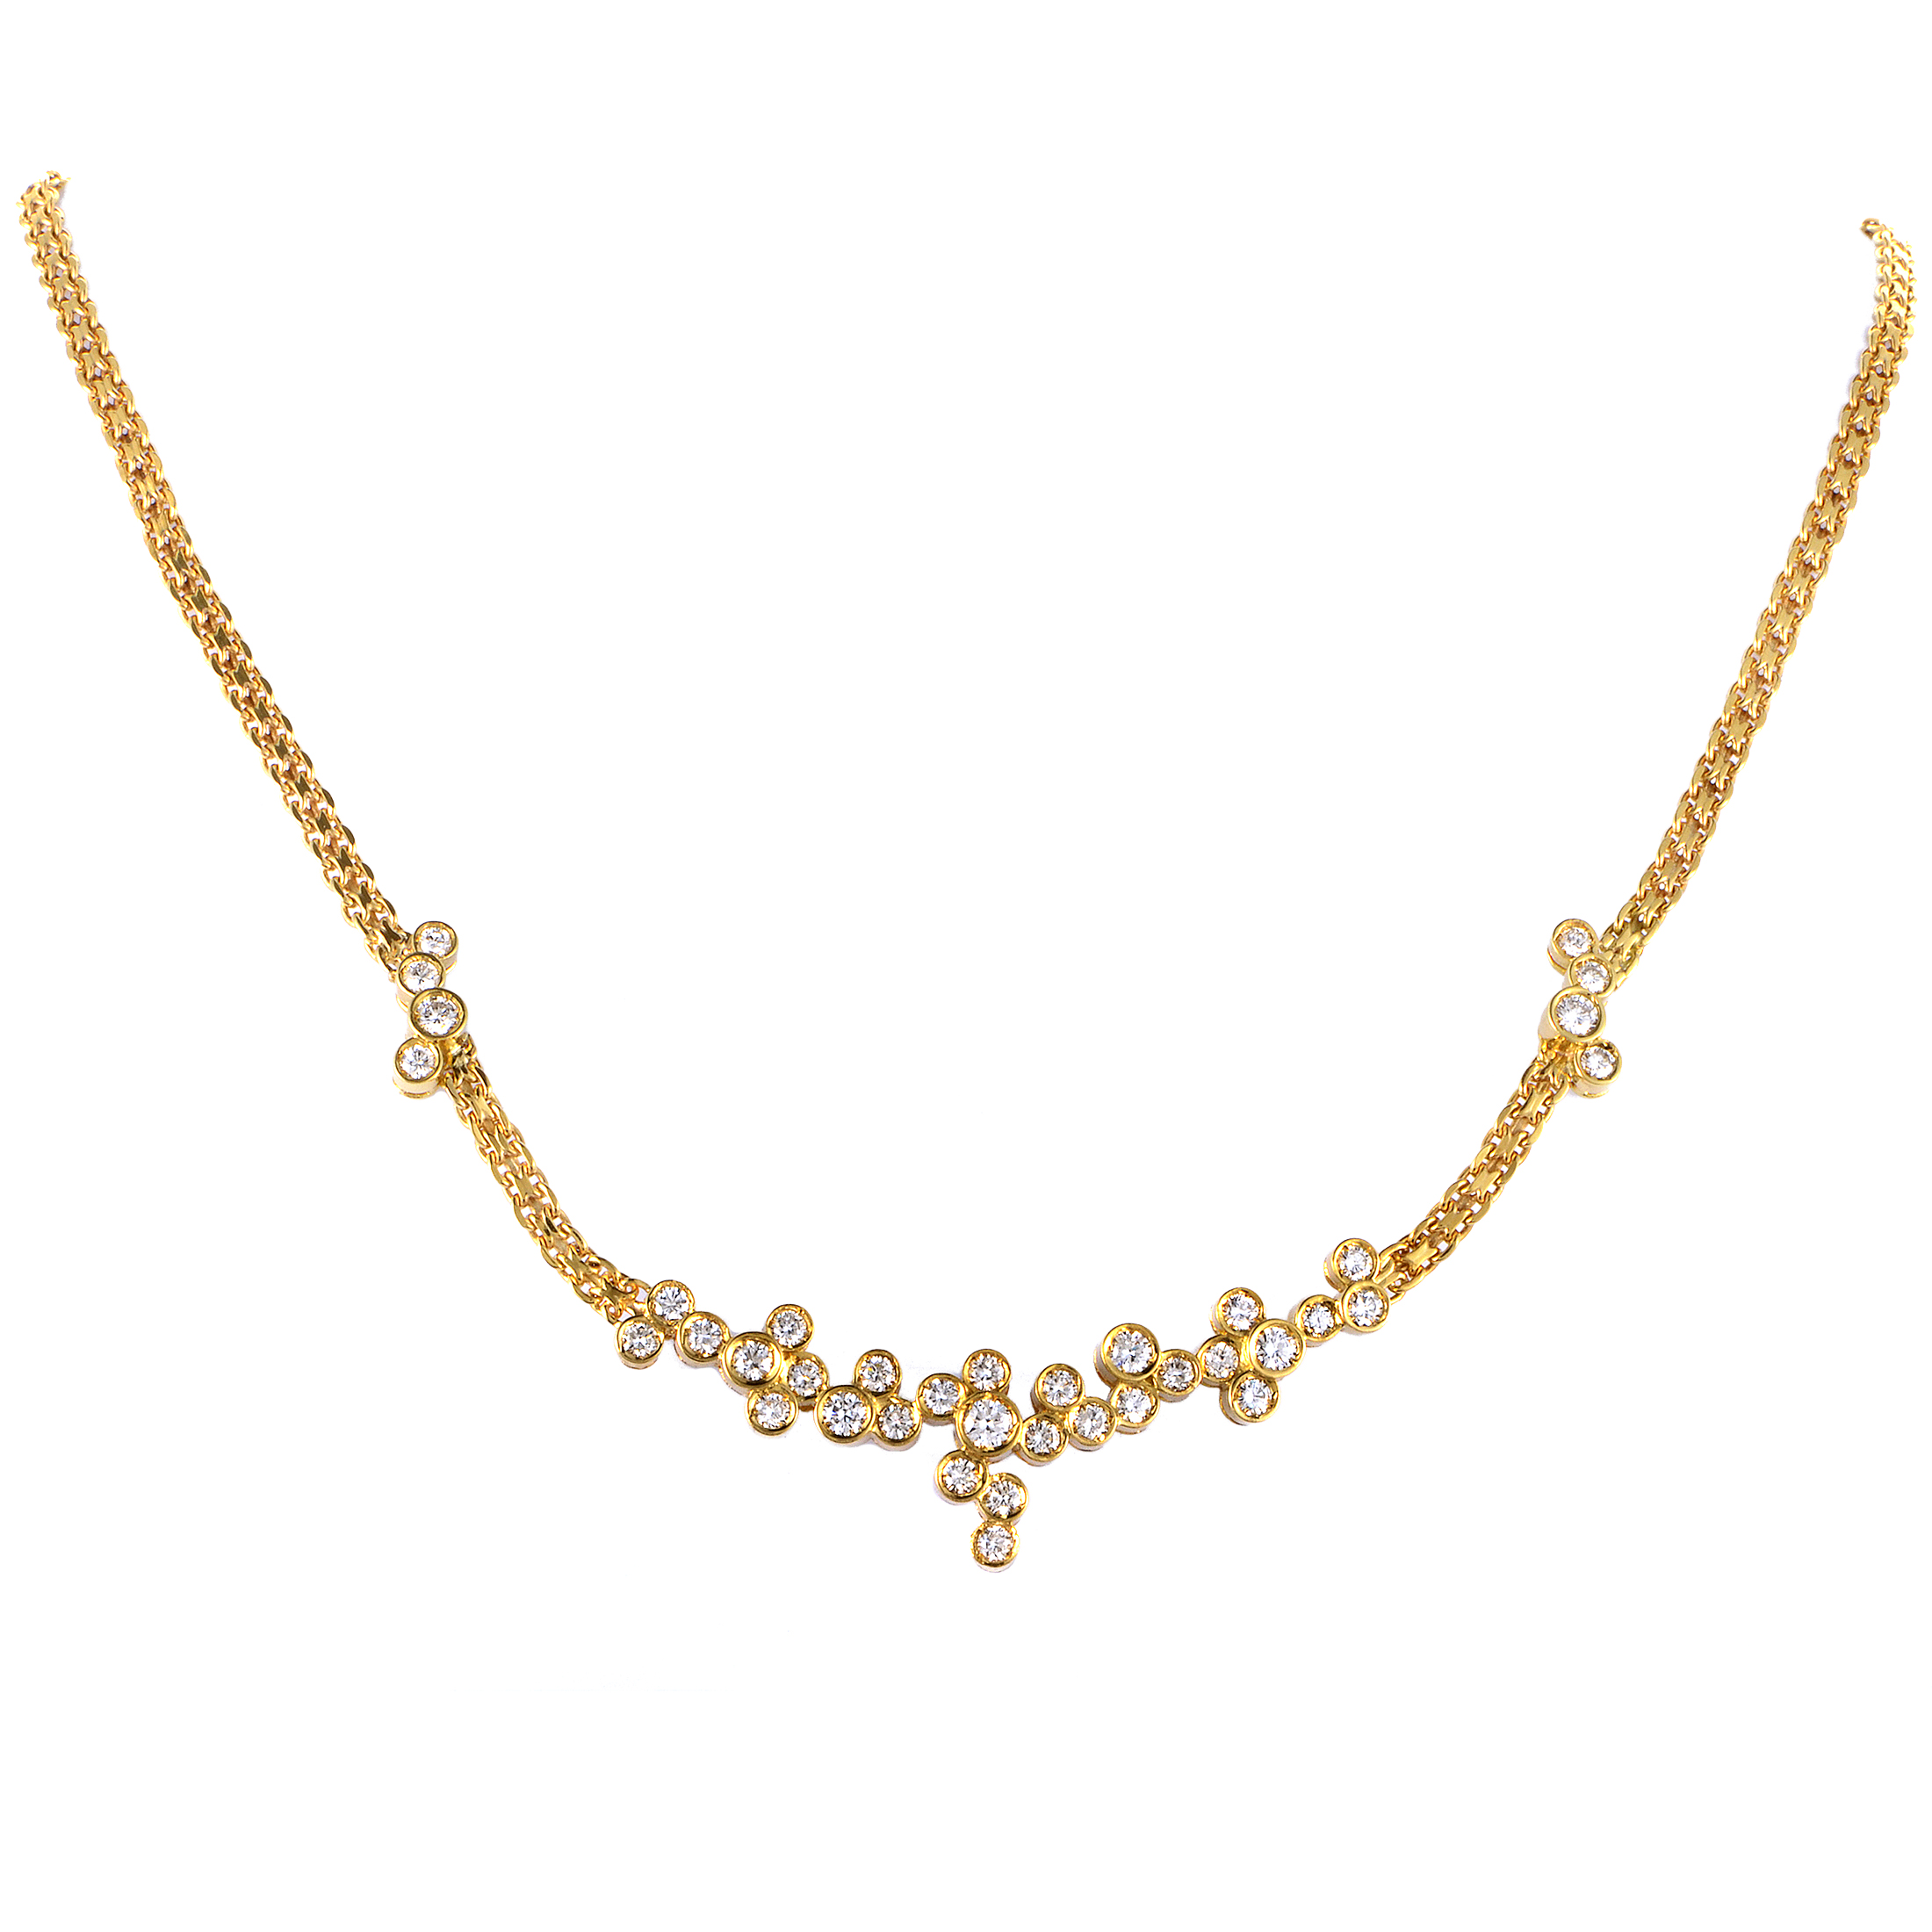 Dior Women's 18K Yellow Gold Diamond Cluster Necklace